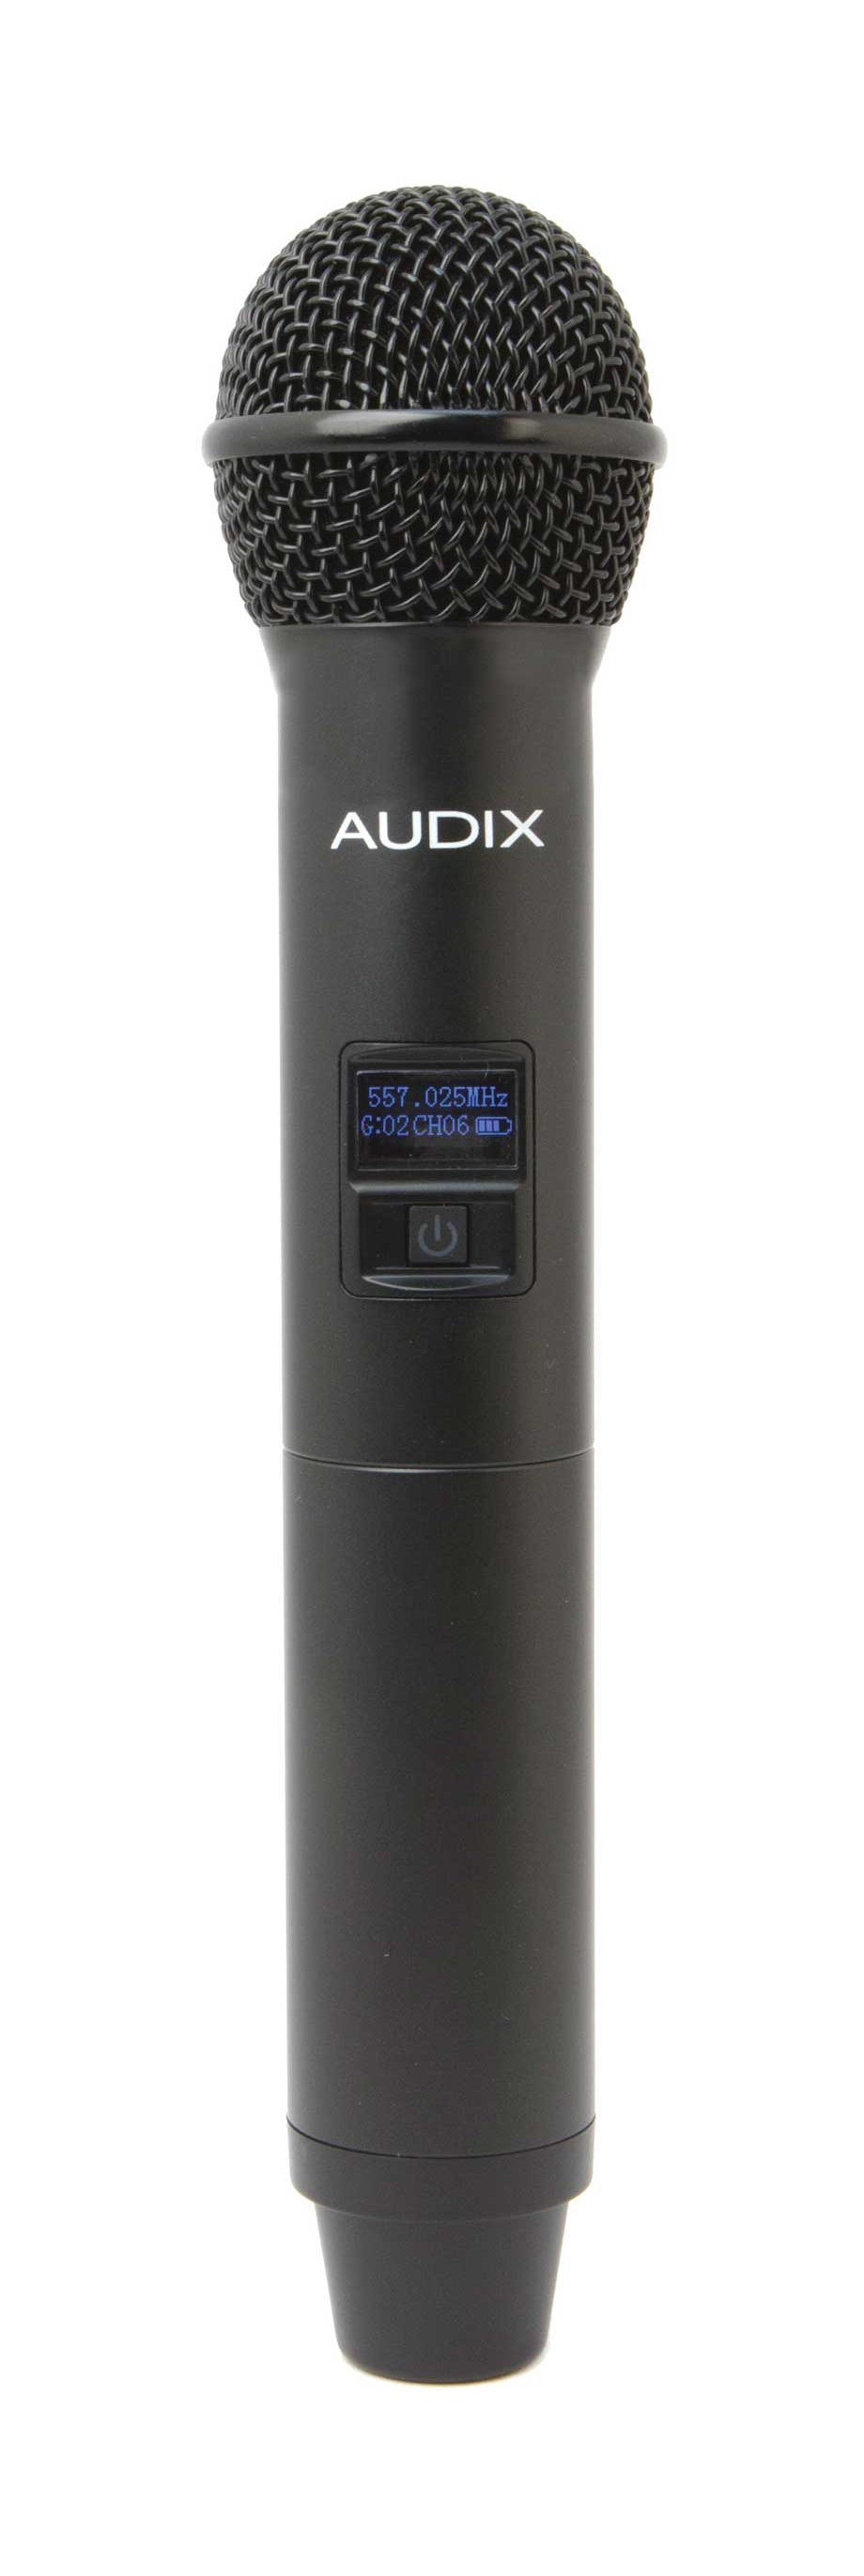 Handheld Transmitter Microphone with OM7 Capsule, 64 MHz